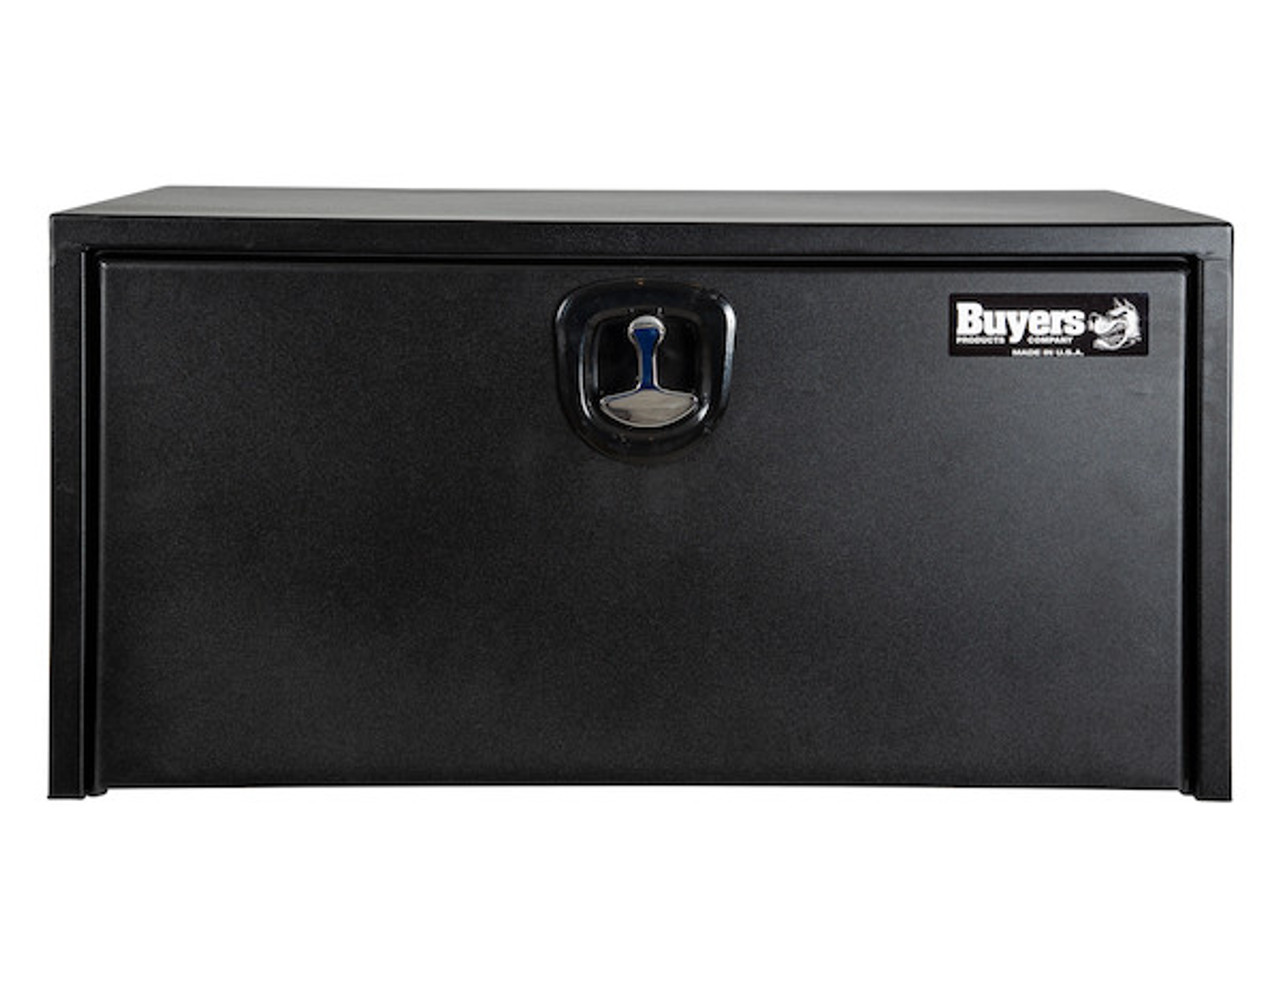 "1734500 BUYERS PRODUCTS TEXTURED MATTE BLACK STEEL UNDERBODY TRUCK TOOLBOX WITH 3-POINT LATCH 24""Hx24""Dx24""W  Picture # 2"